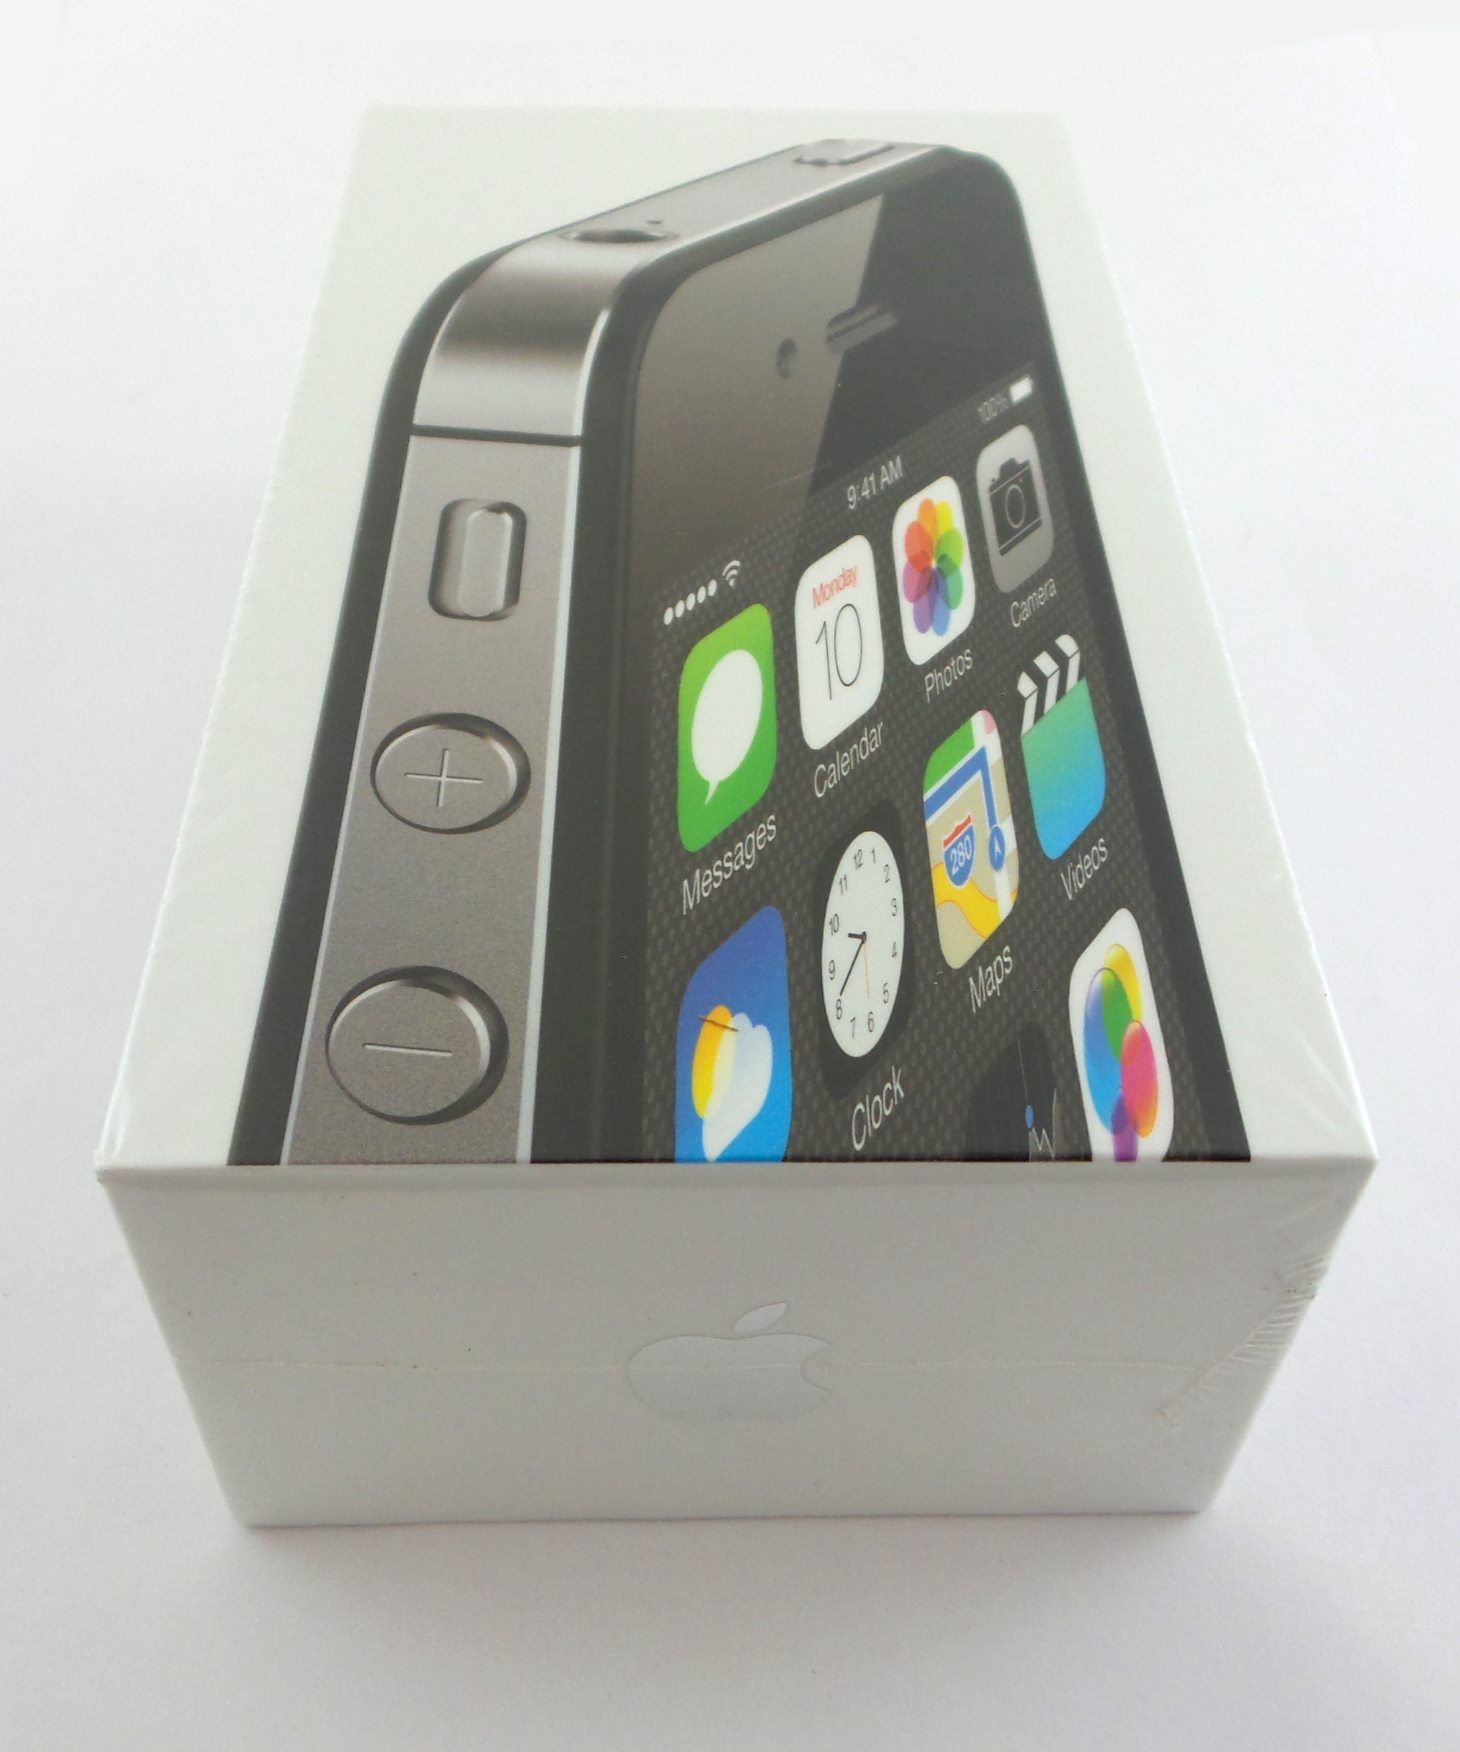 model a1387 iphone apple iphone 4s 8gb cdma gsm mf267ll a model a1387 9472